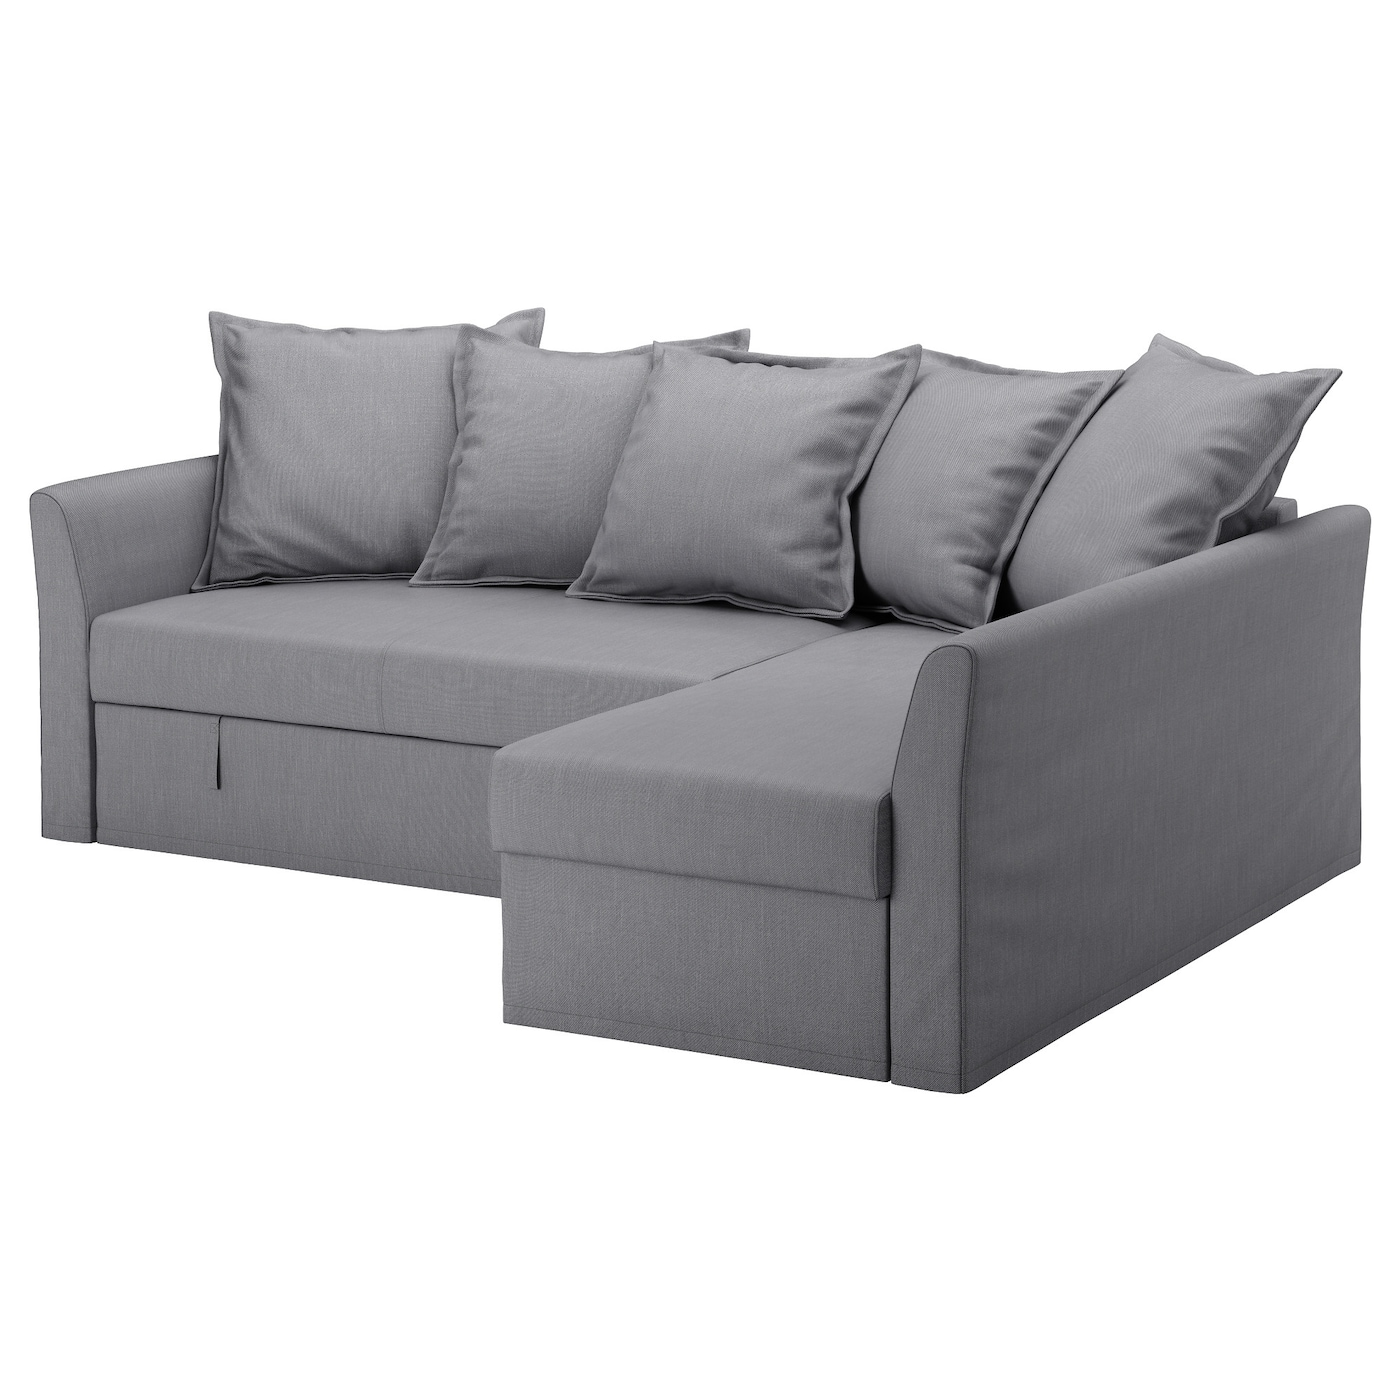 Sofa Beds Futons Ikea ~ Comfortable Pull Out Sofa